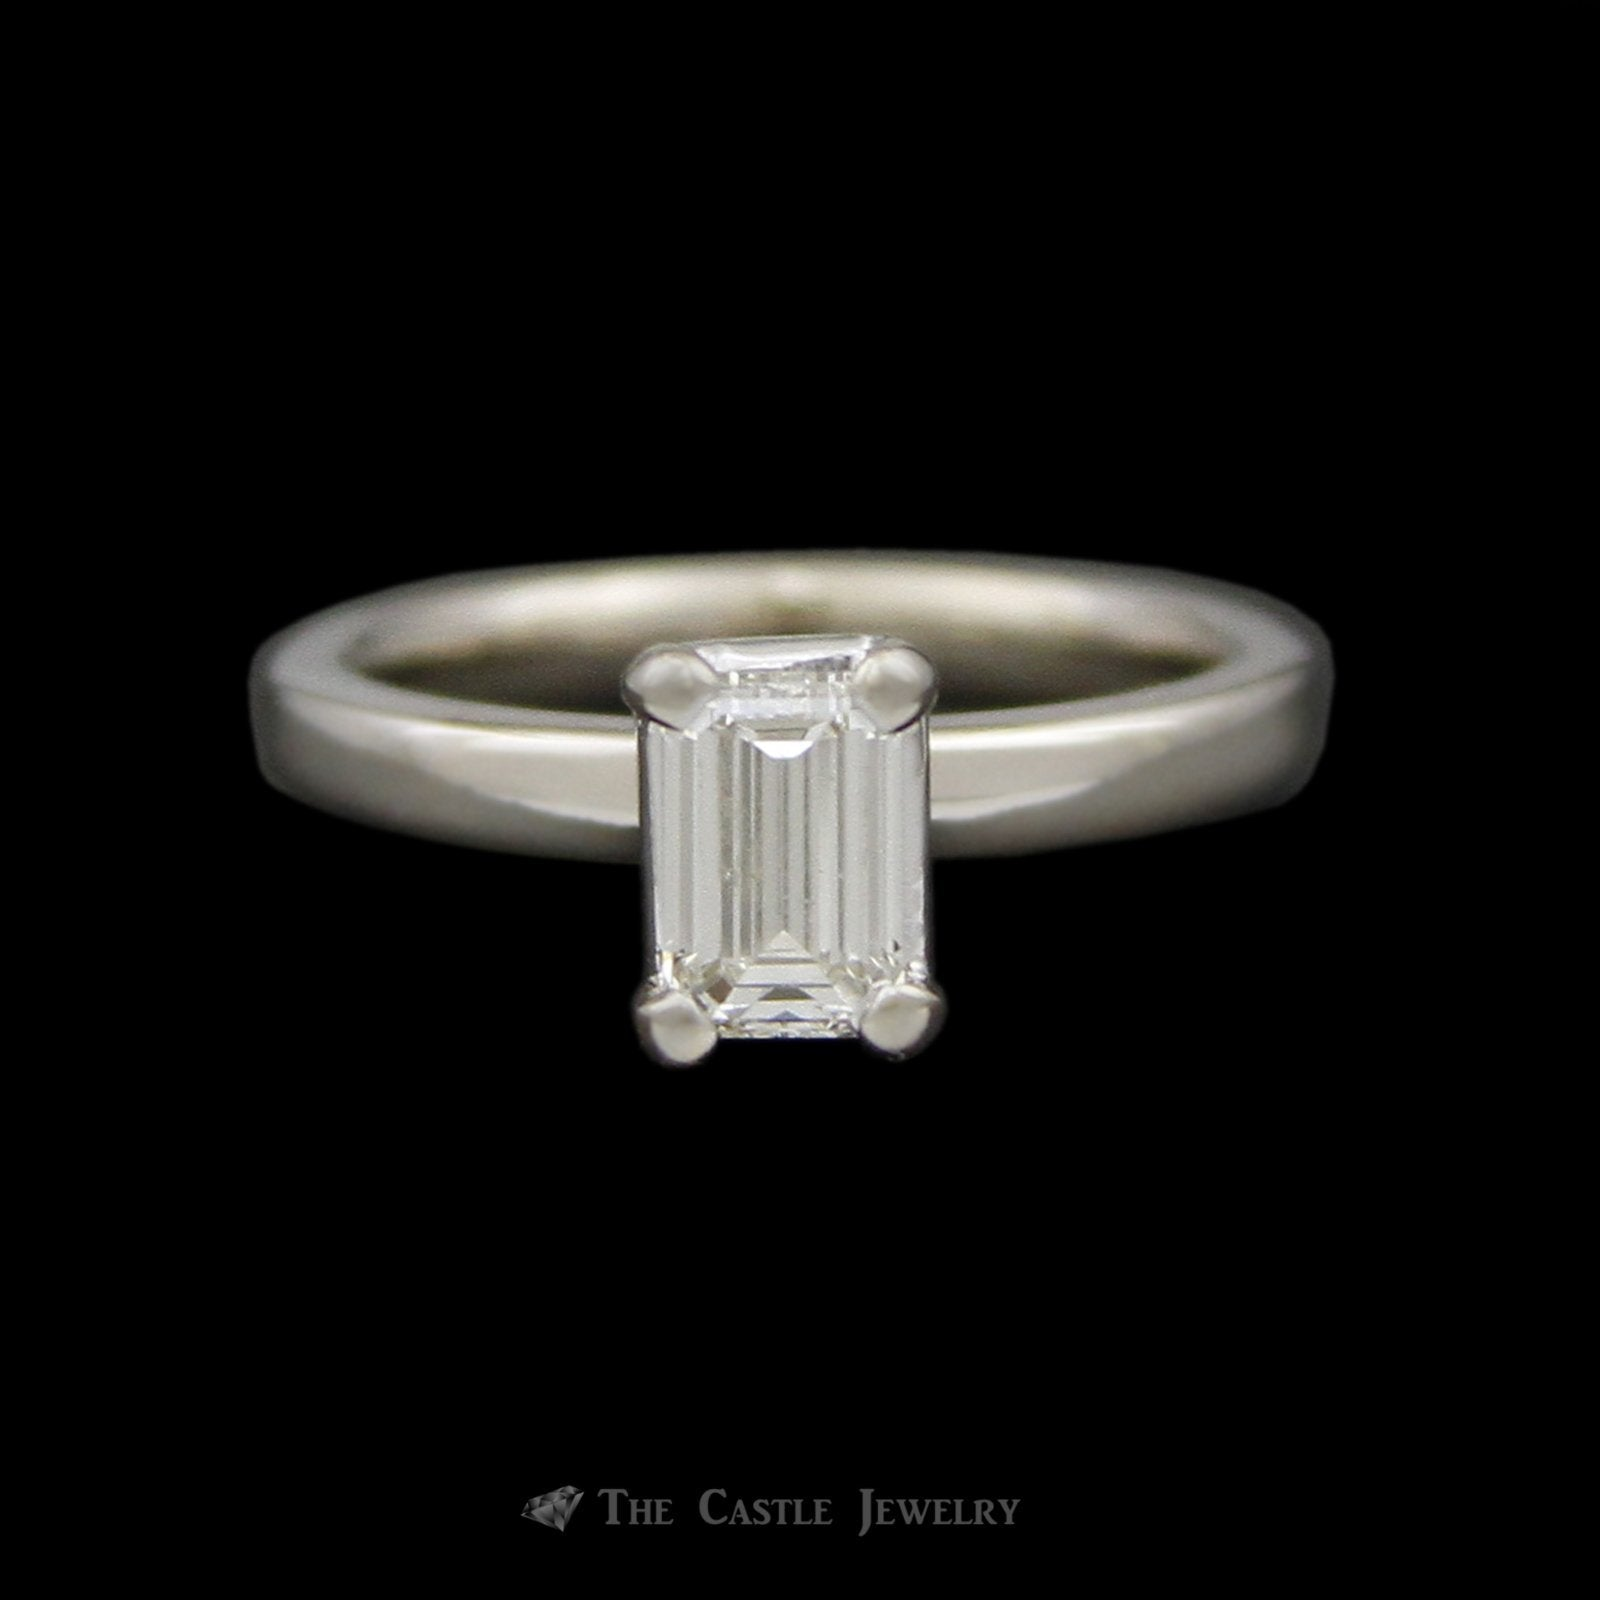 EGL Certified VS2/H Emerald Cut .74ct Diamond Solitaire Engagement Ring in 14K White Gold